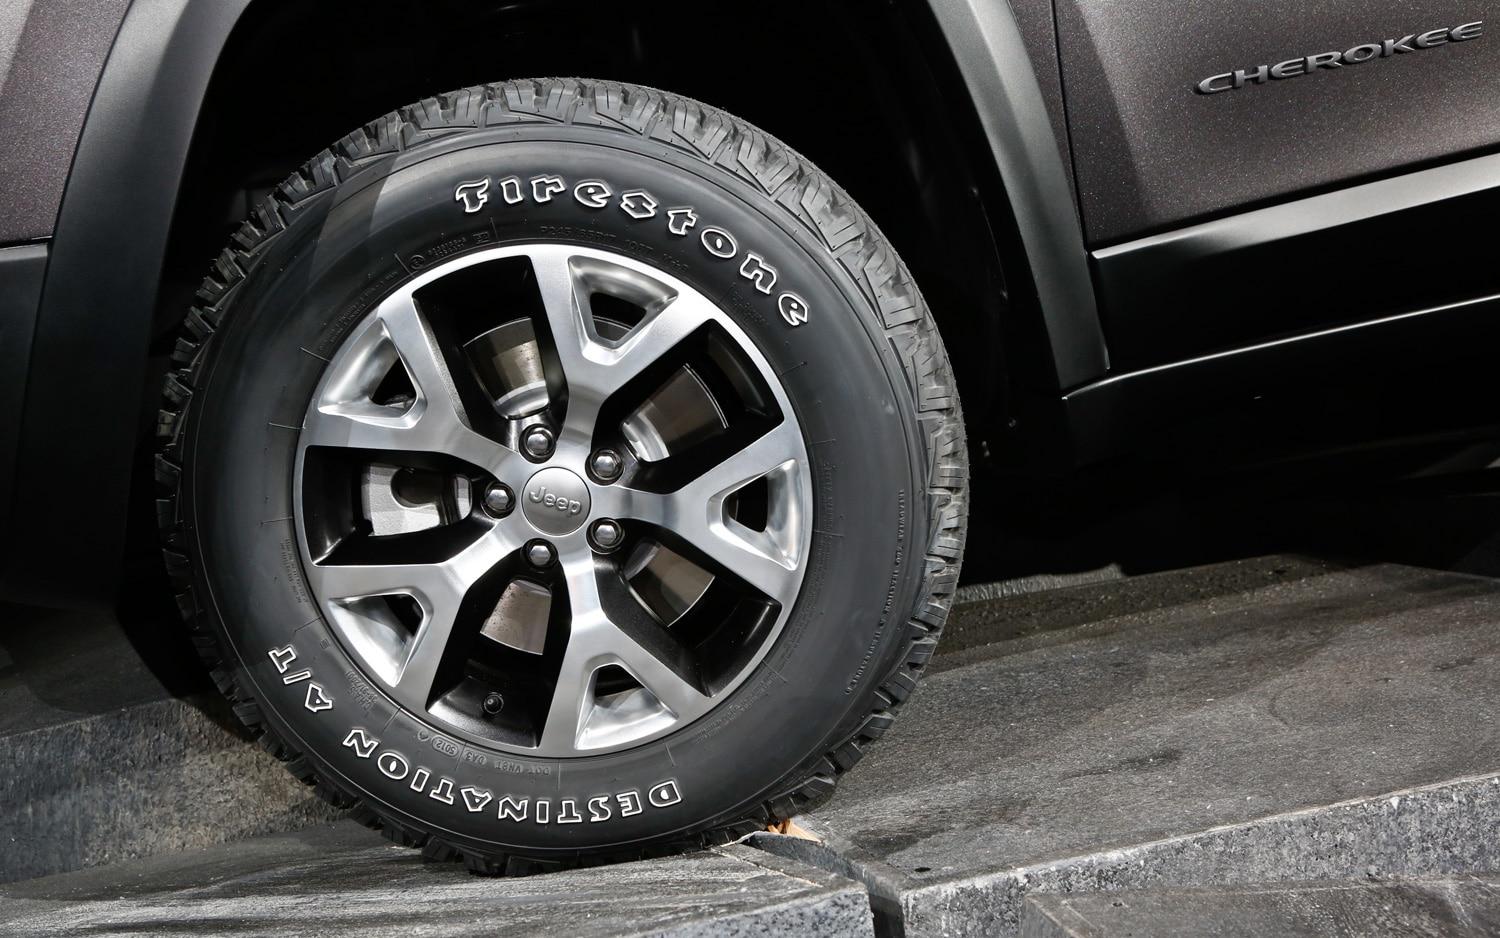 2014 Jeep Cherokee wheels1